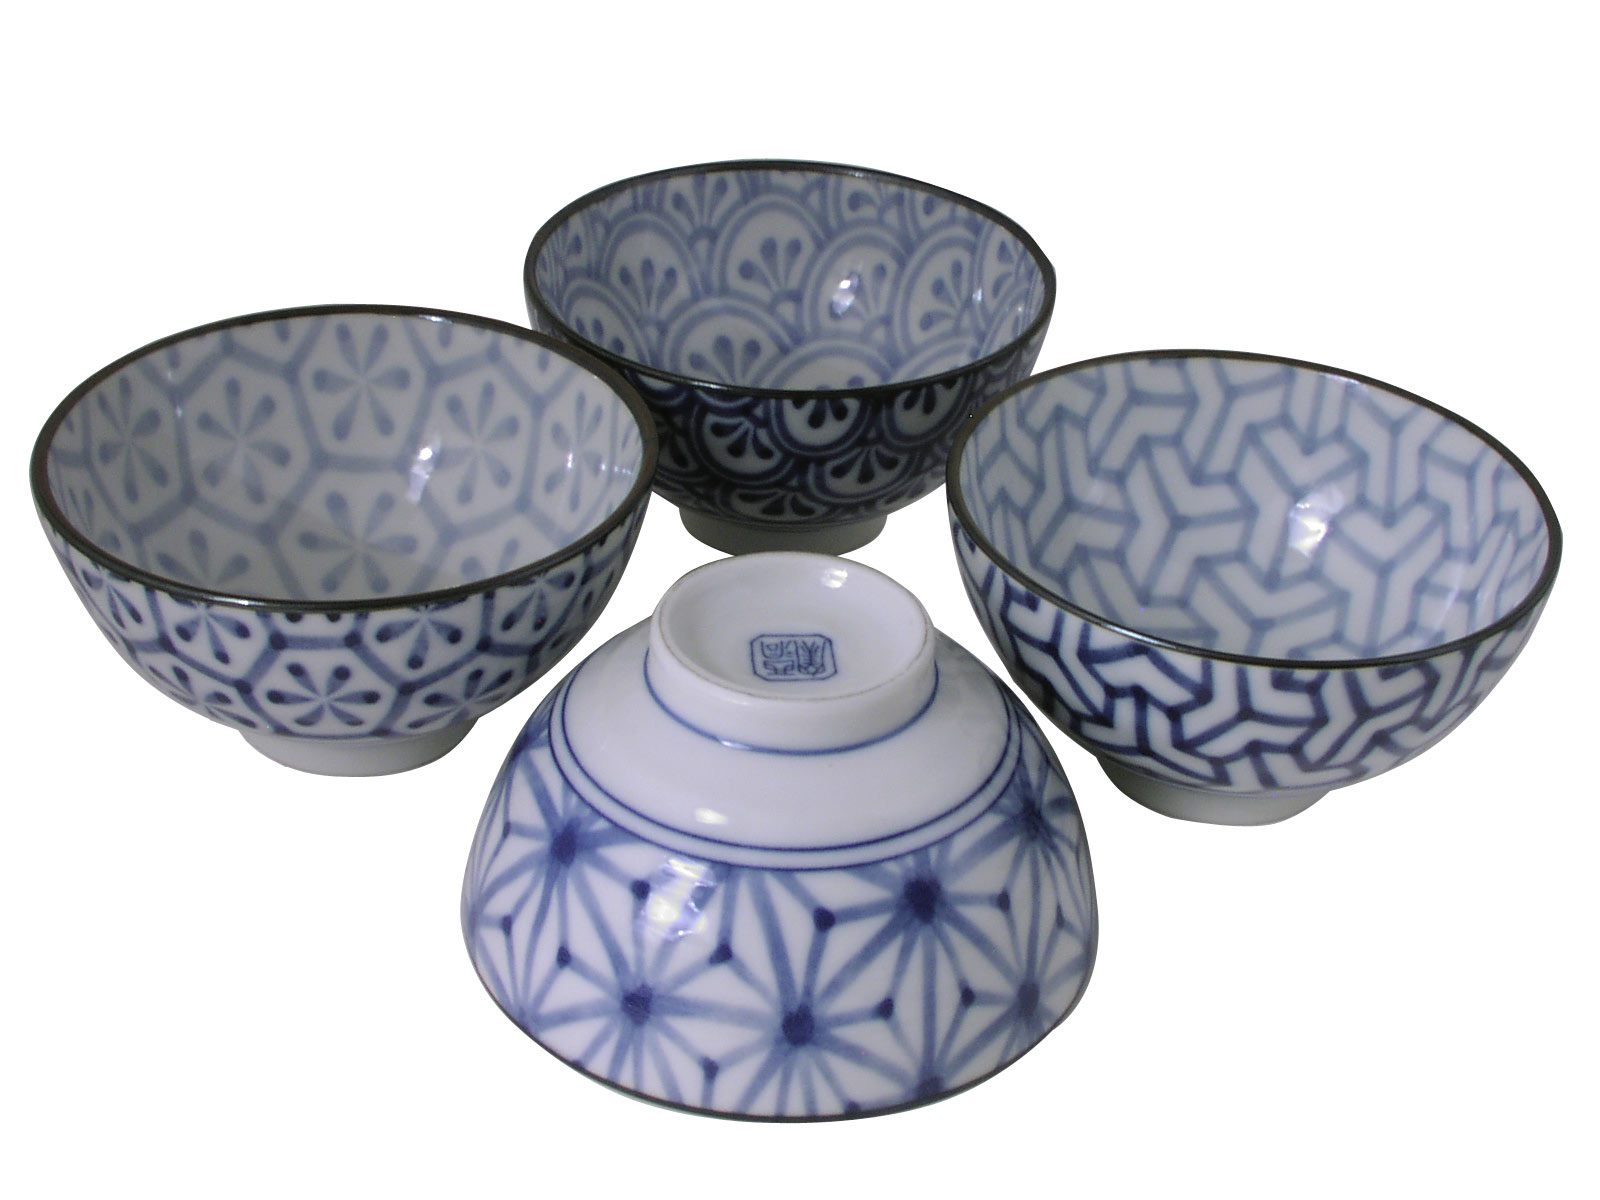 Modern Japanese Geometric Ceramic White And Blue Rice